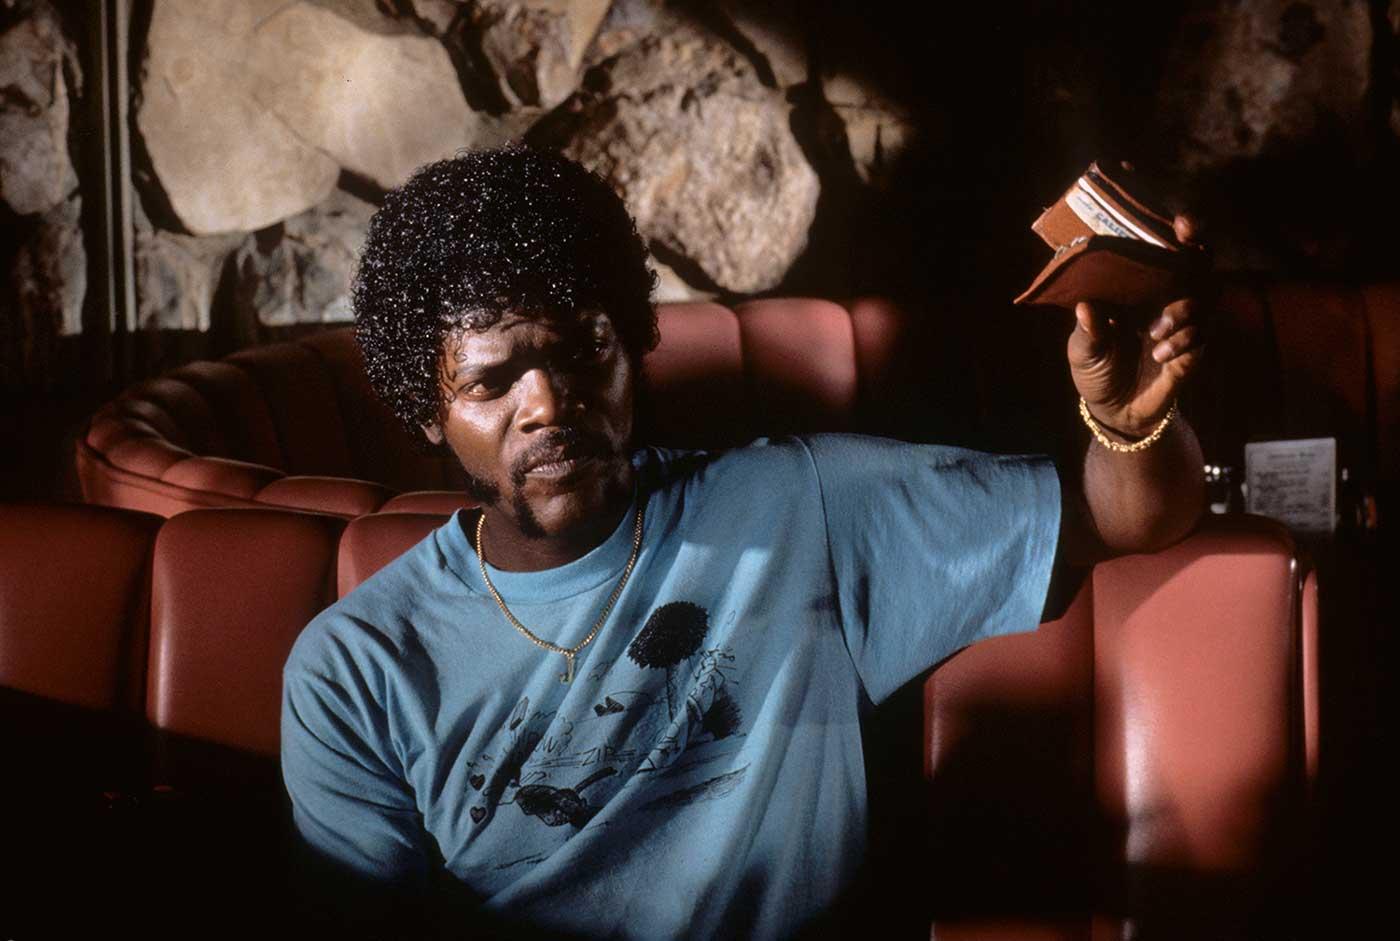 As Jules, the PULP FICTION actor received an Oscar nomination for Supporting Actor; he made the film one year after another Tarantino-written film, TRUE ROMANCE.